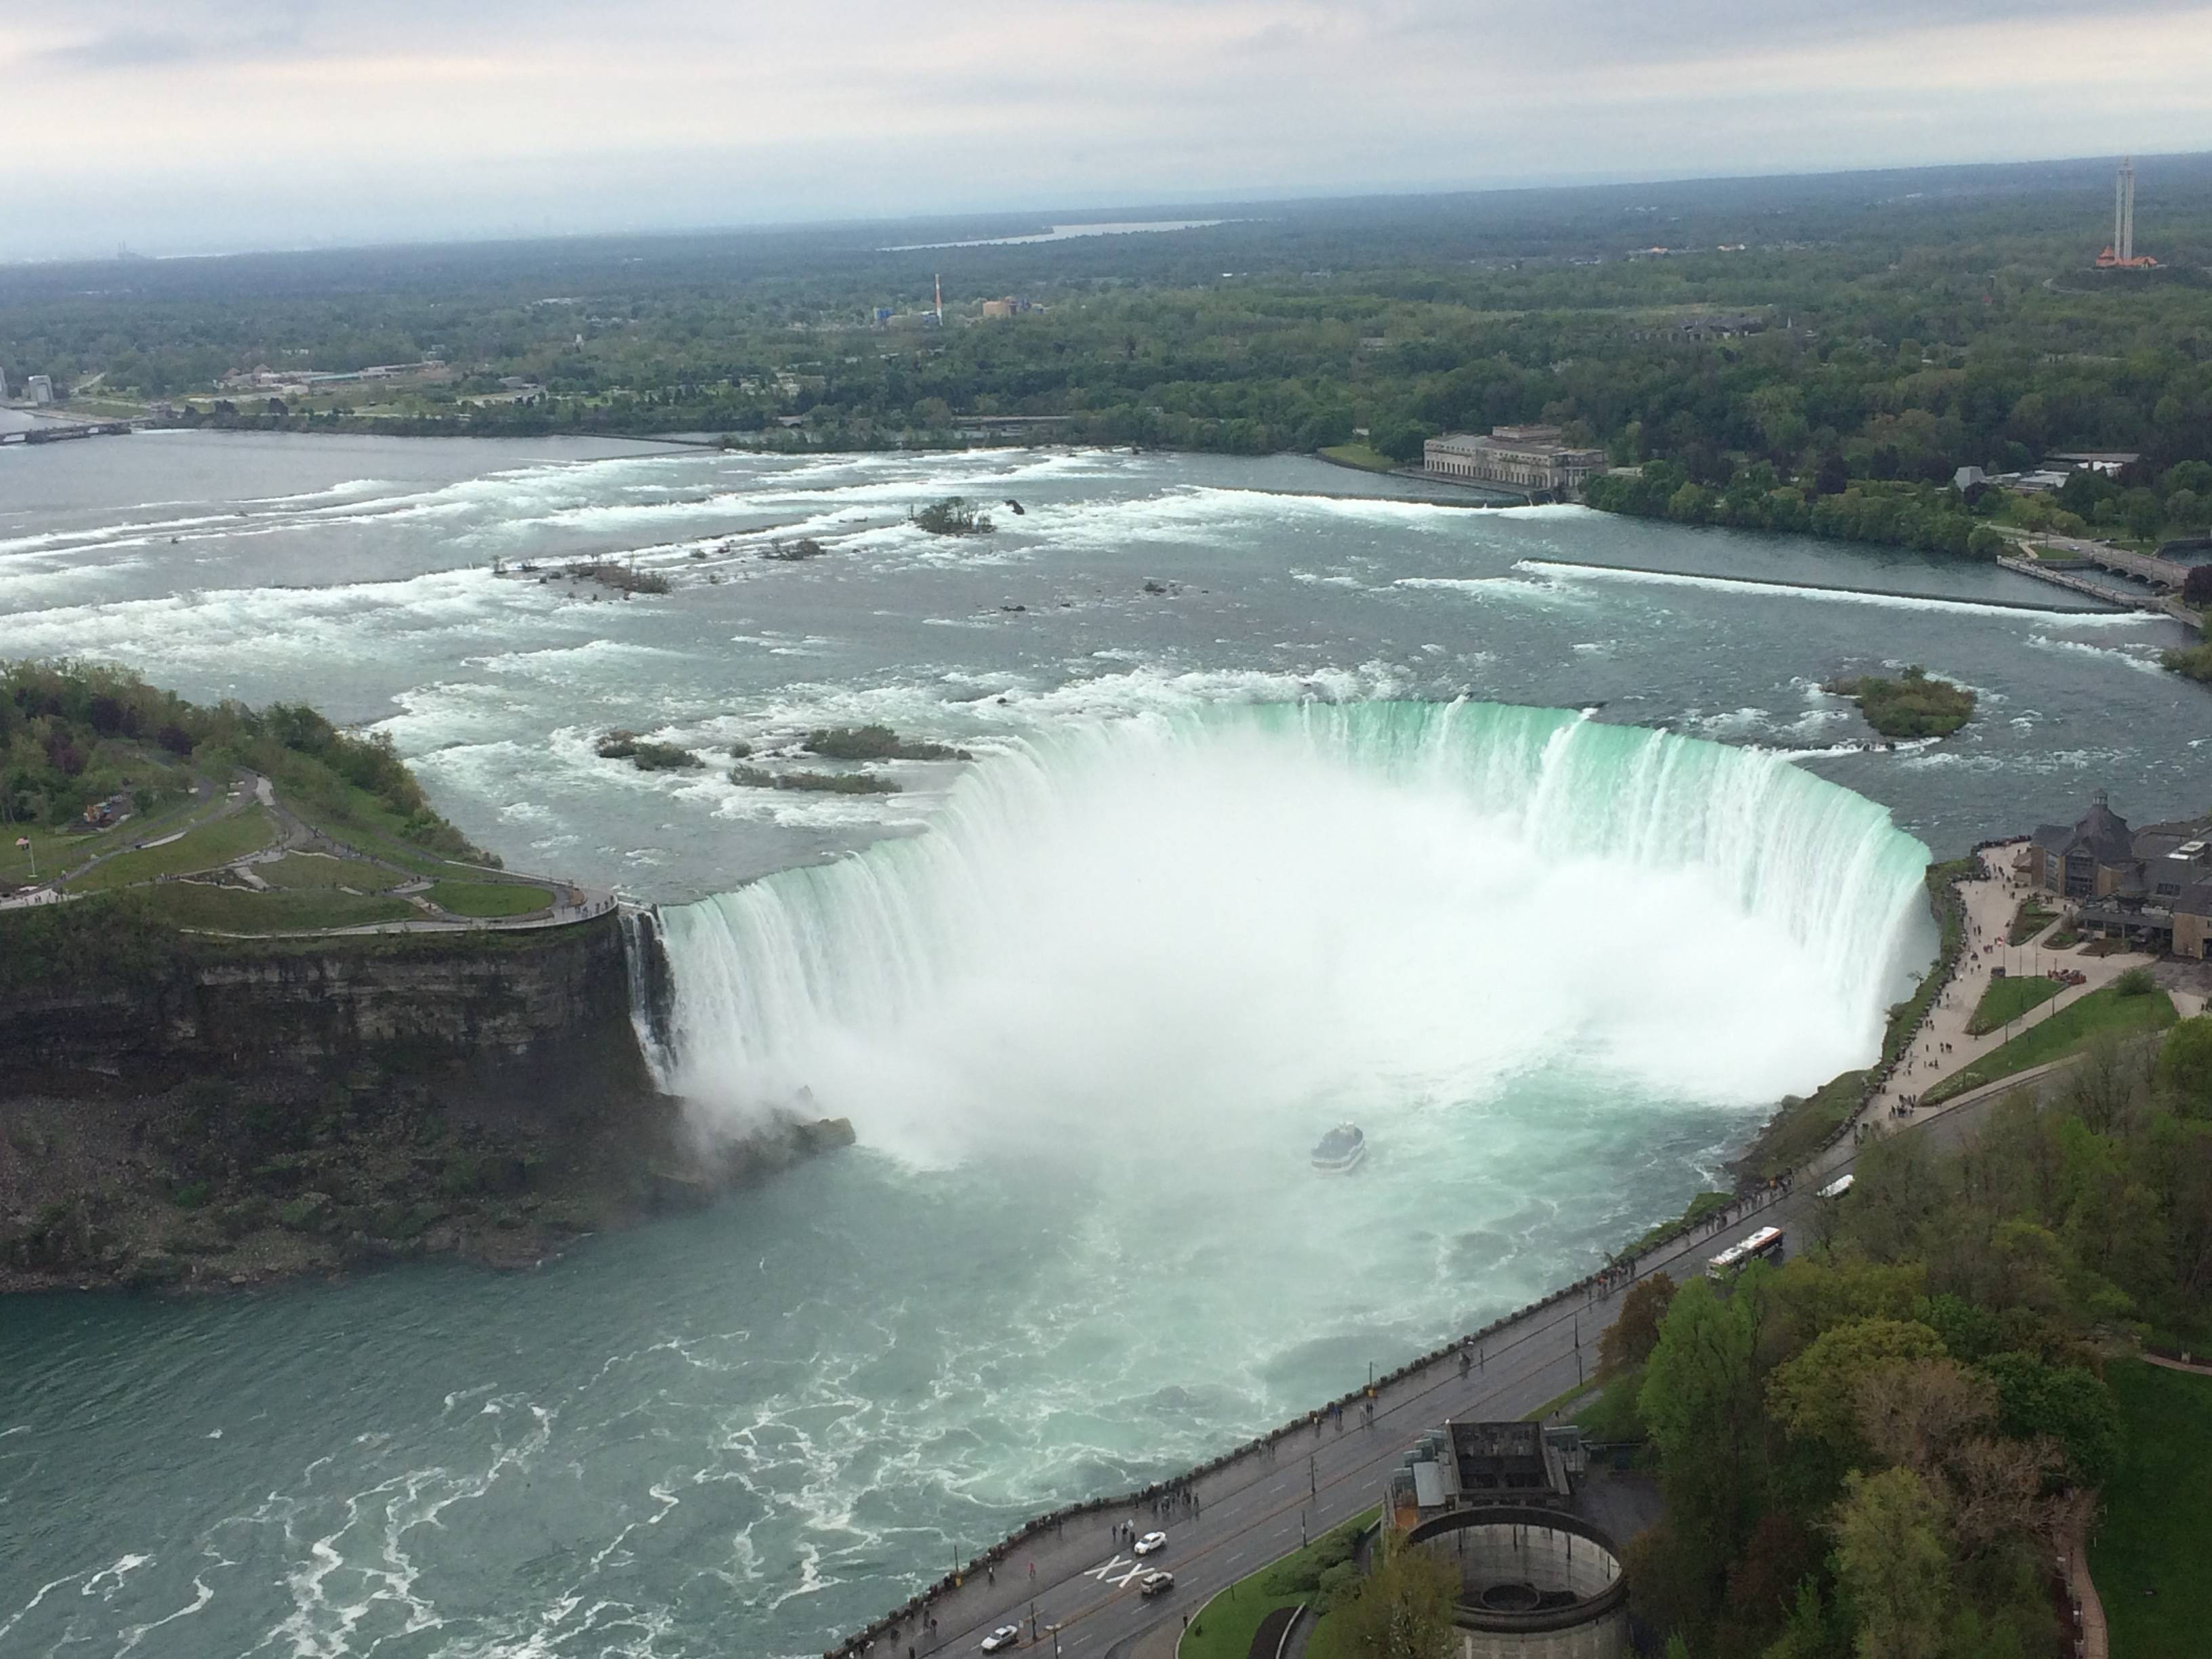 Photo 3: Tour Toronto - Niagara fall